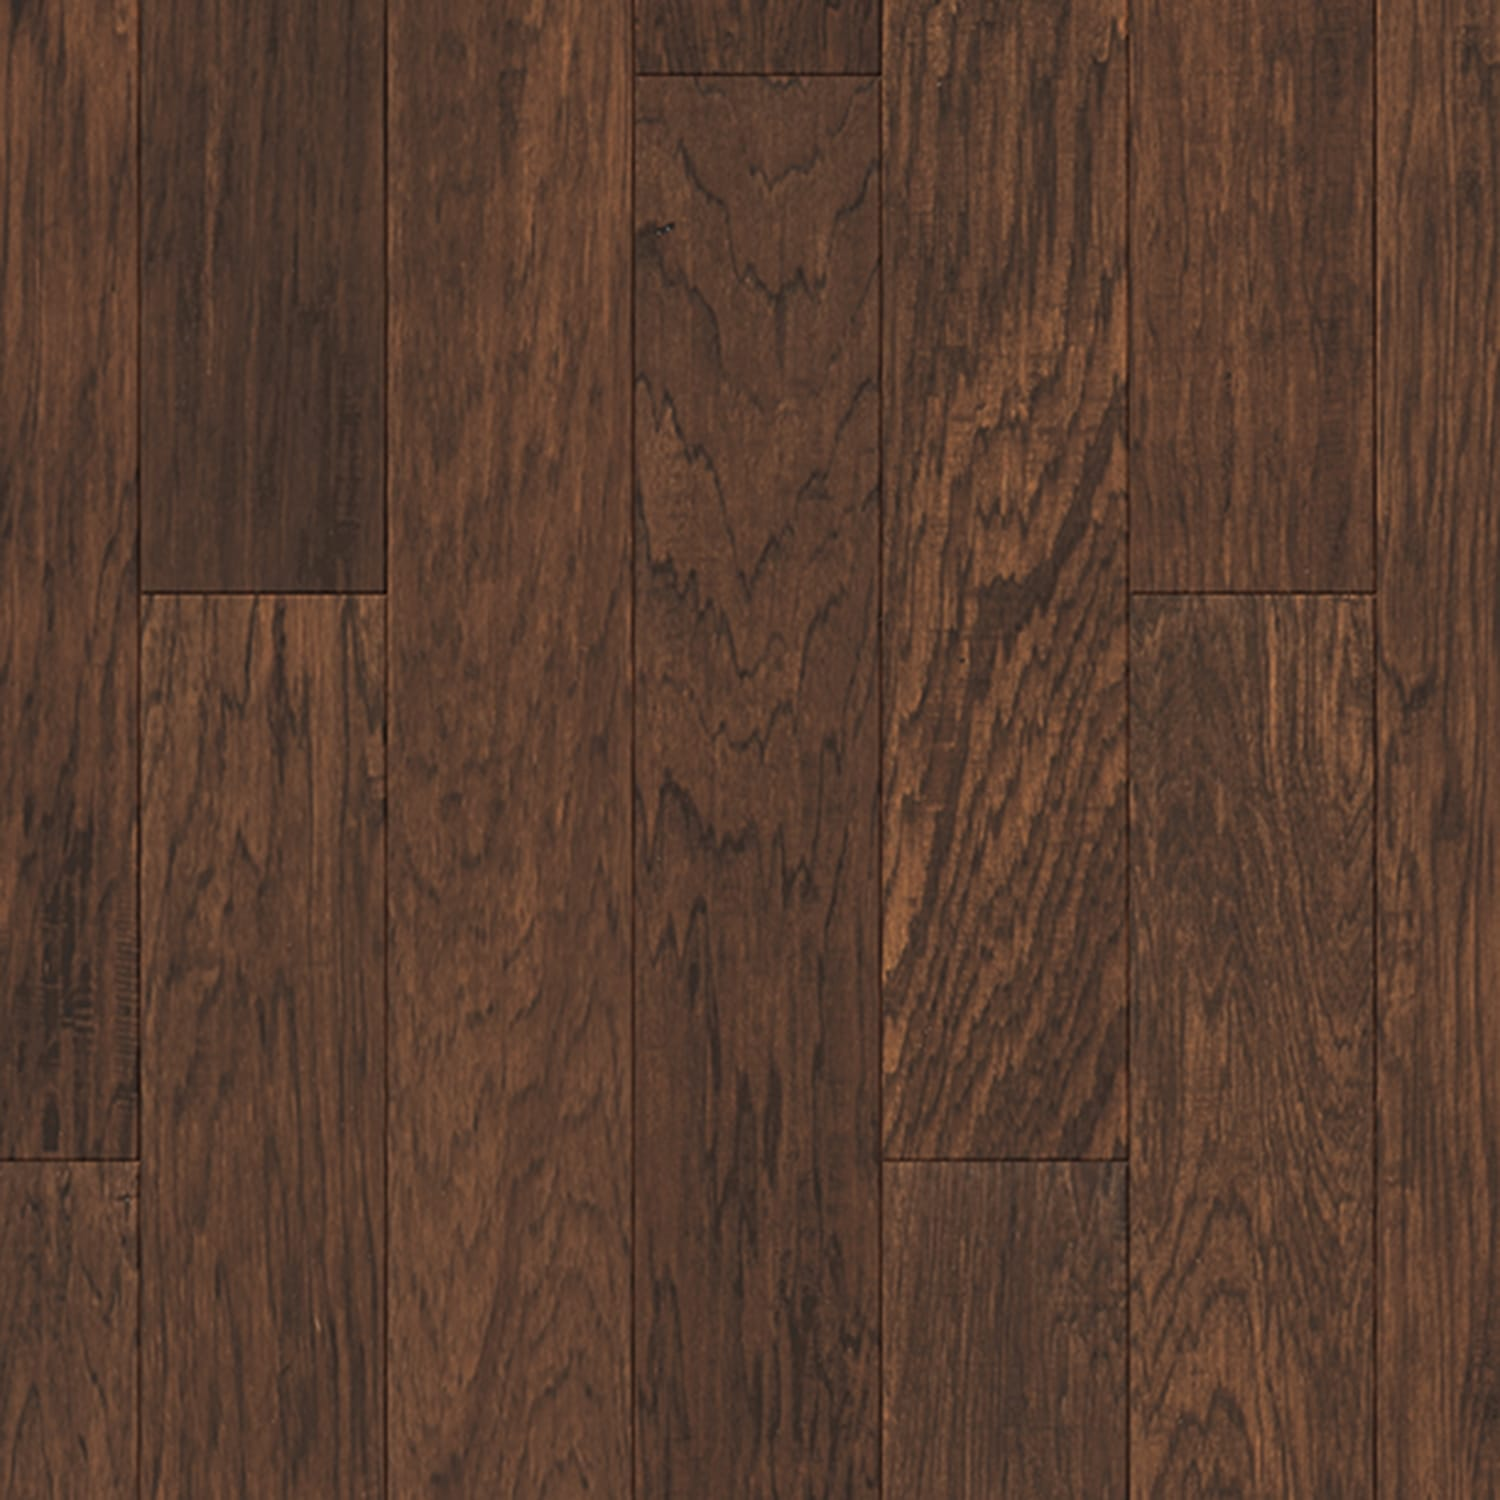 triangulo hardwood ngulo spanish savanna engineered tri copaiba hickory flooring floors tria